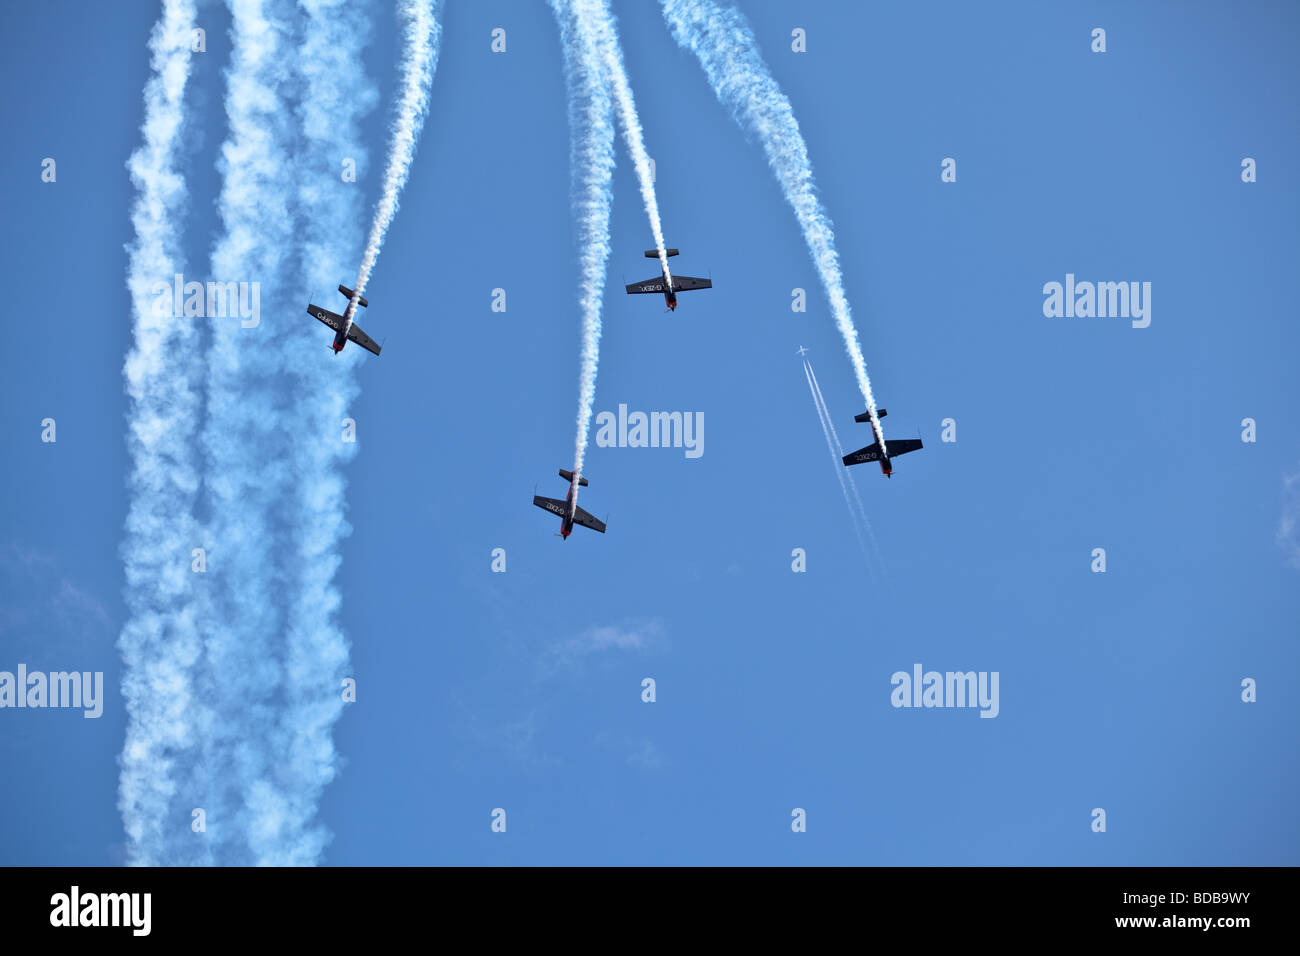 Acrobatic aircraft at the sunderland airshow - Stock Image